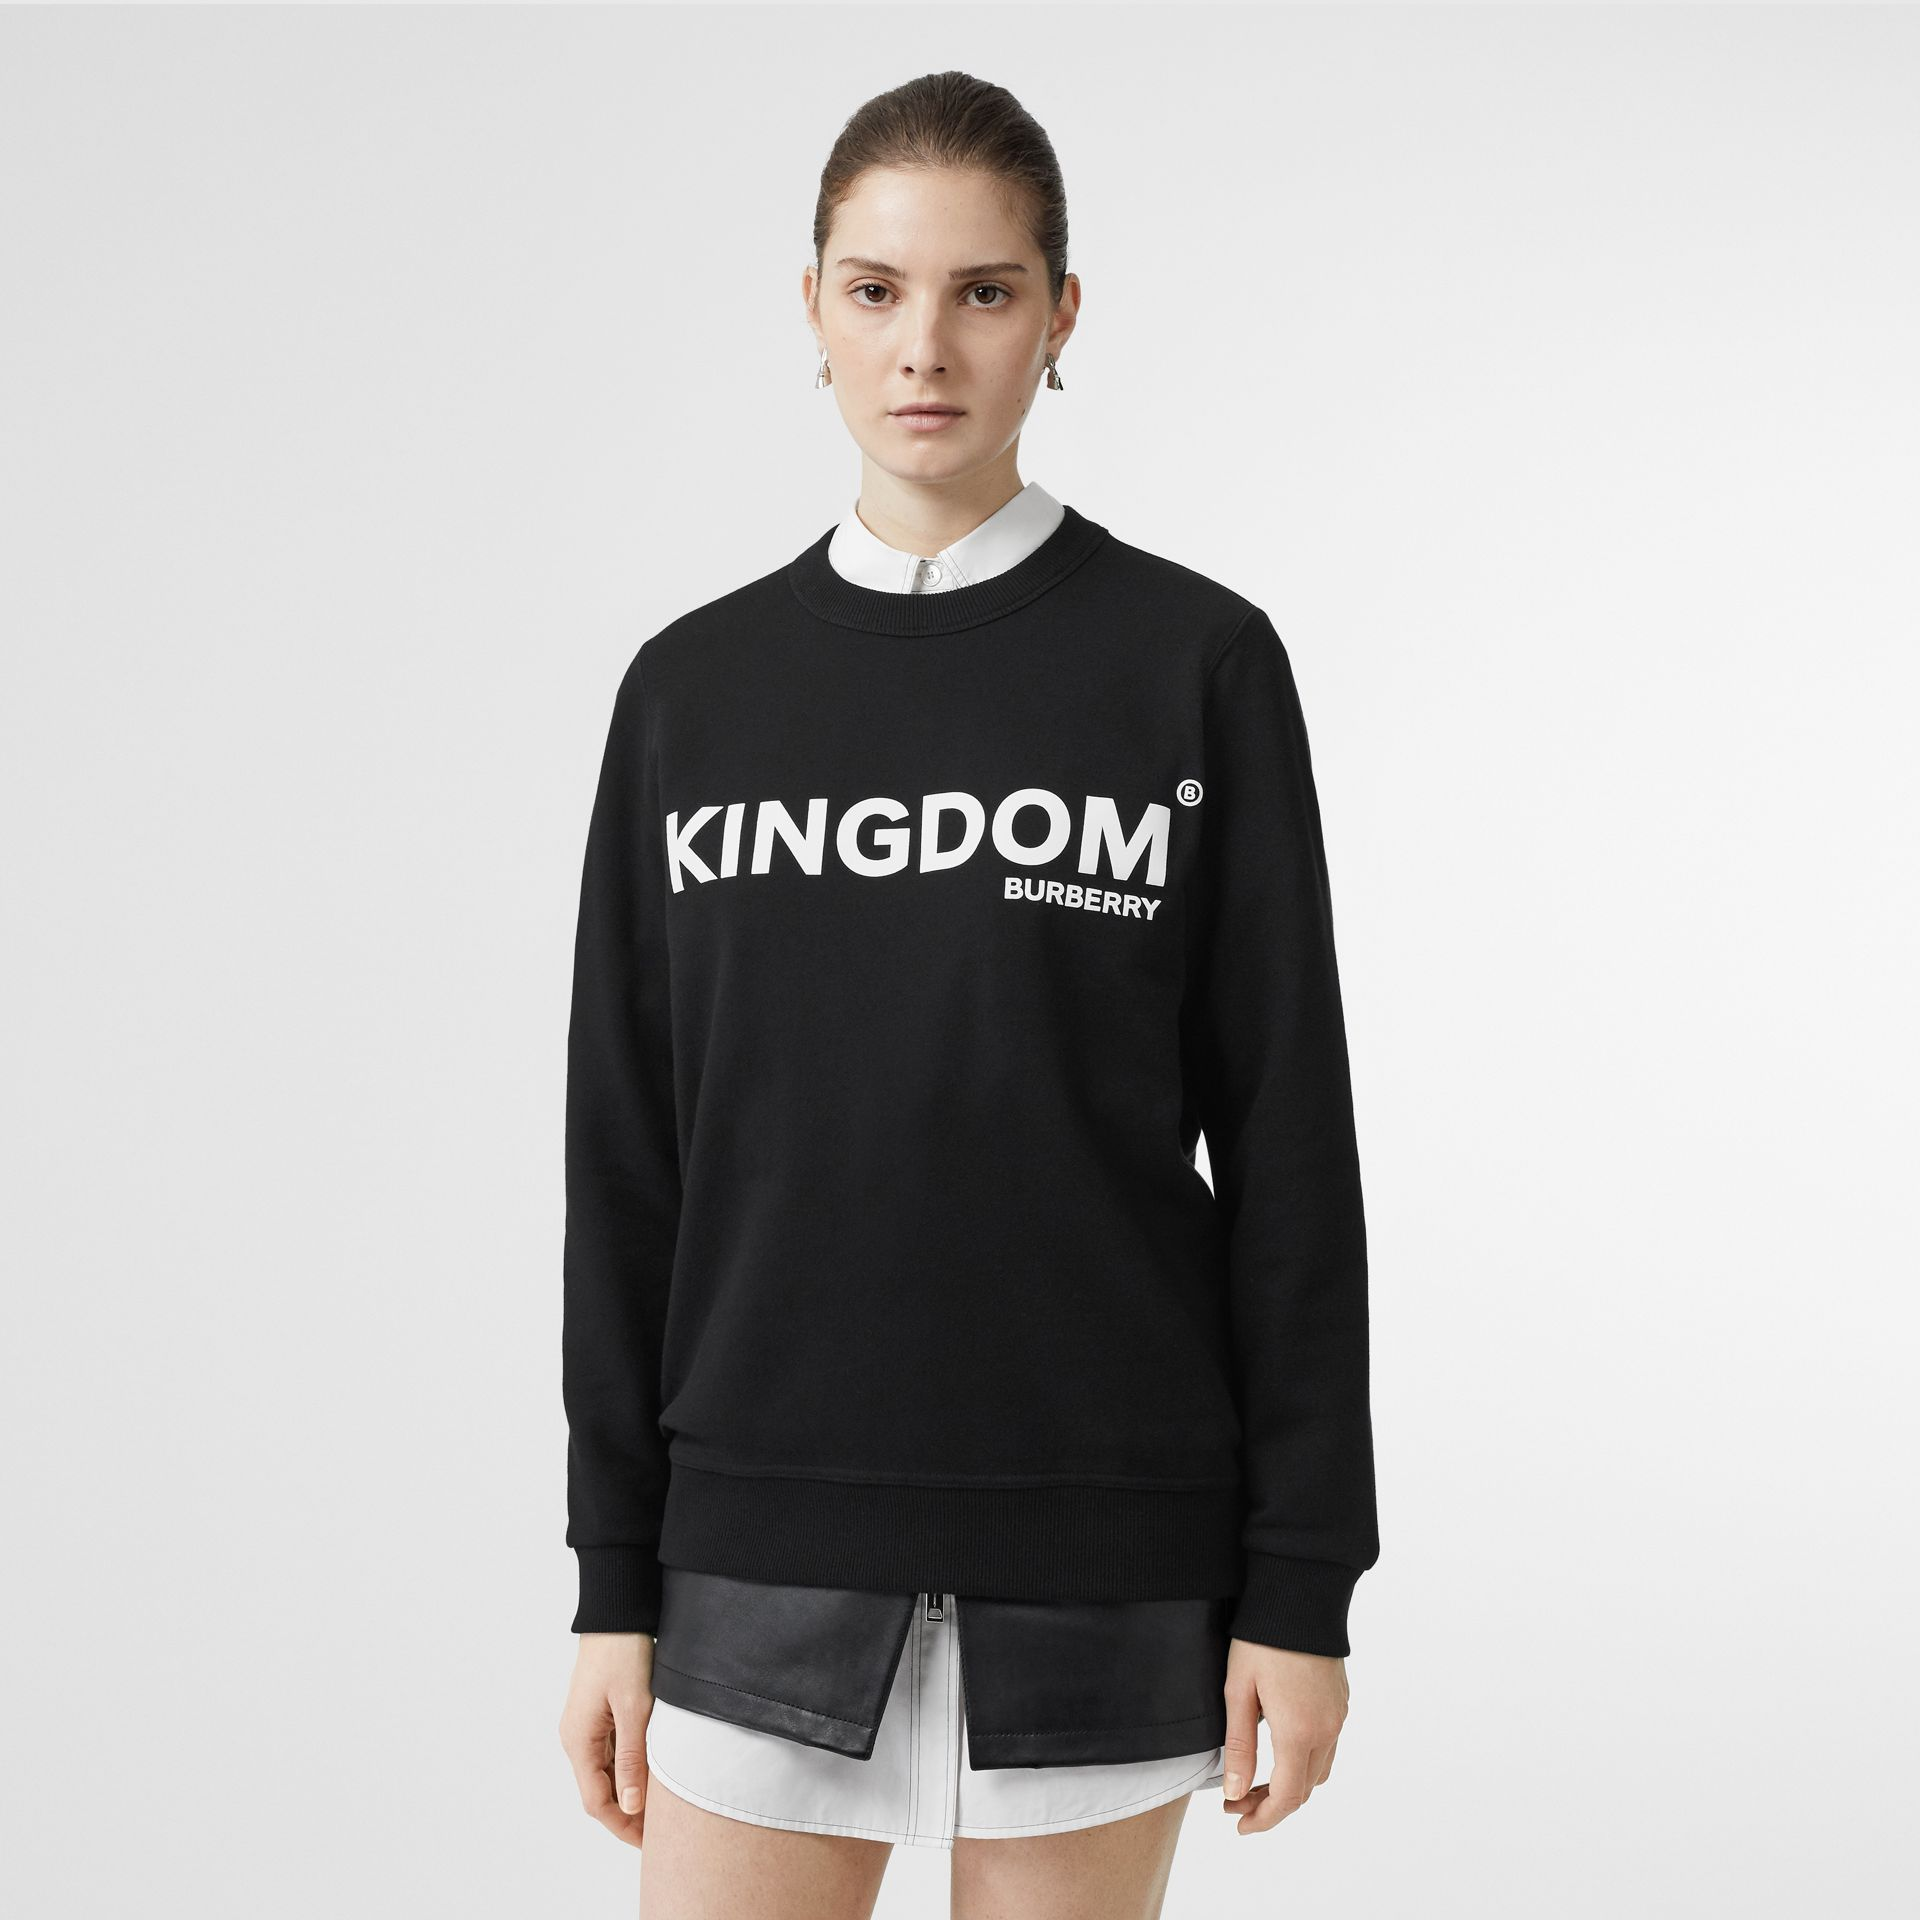 Kingdom Print Cotton Sweatshirt in Black - Women | Burberry Singapore - gallery image 4